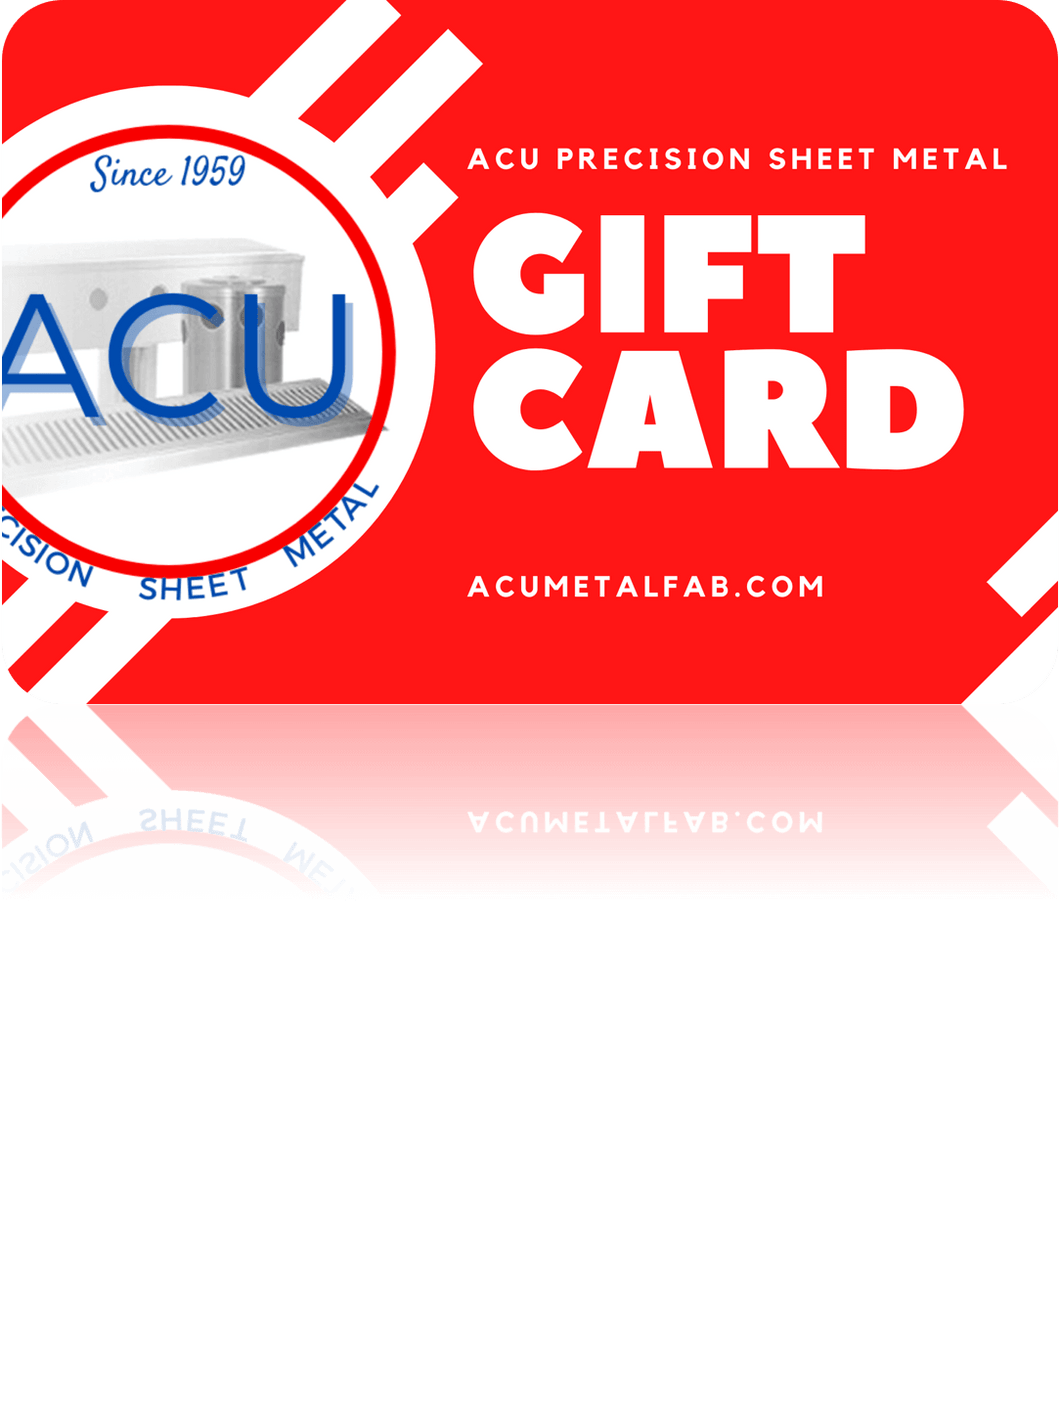 ACU Precision Sheet Metal - Gift Card